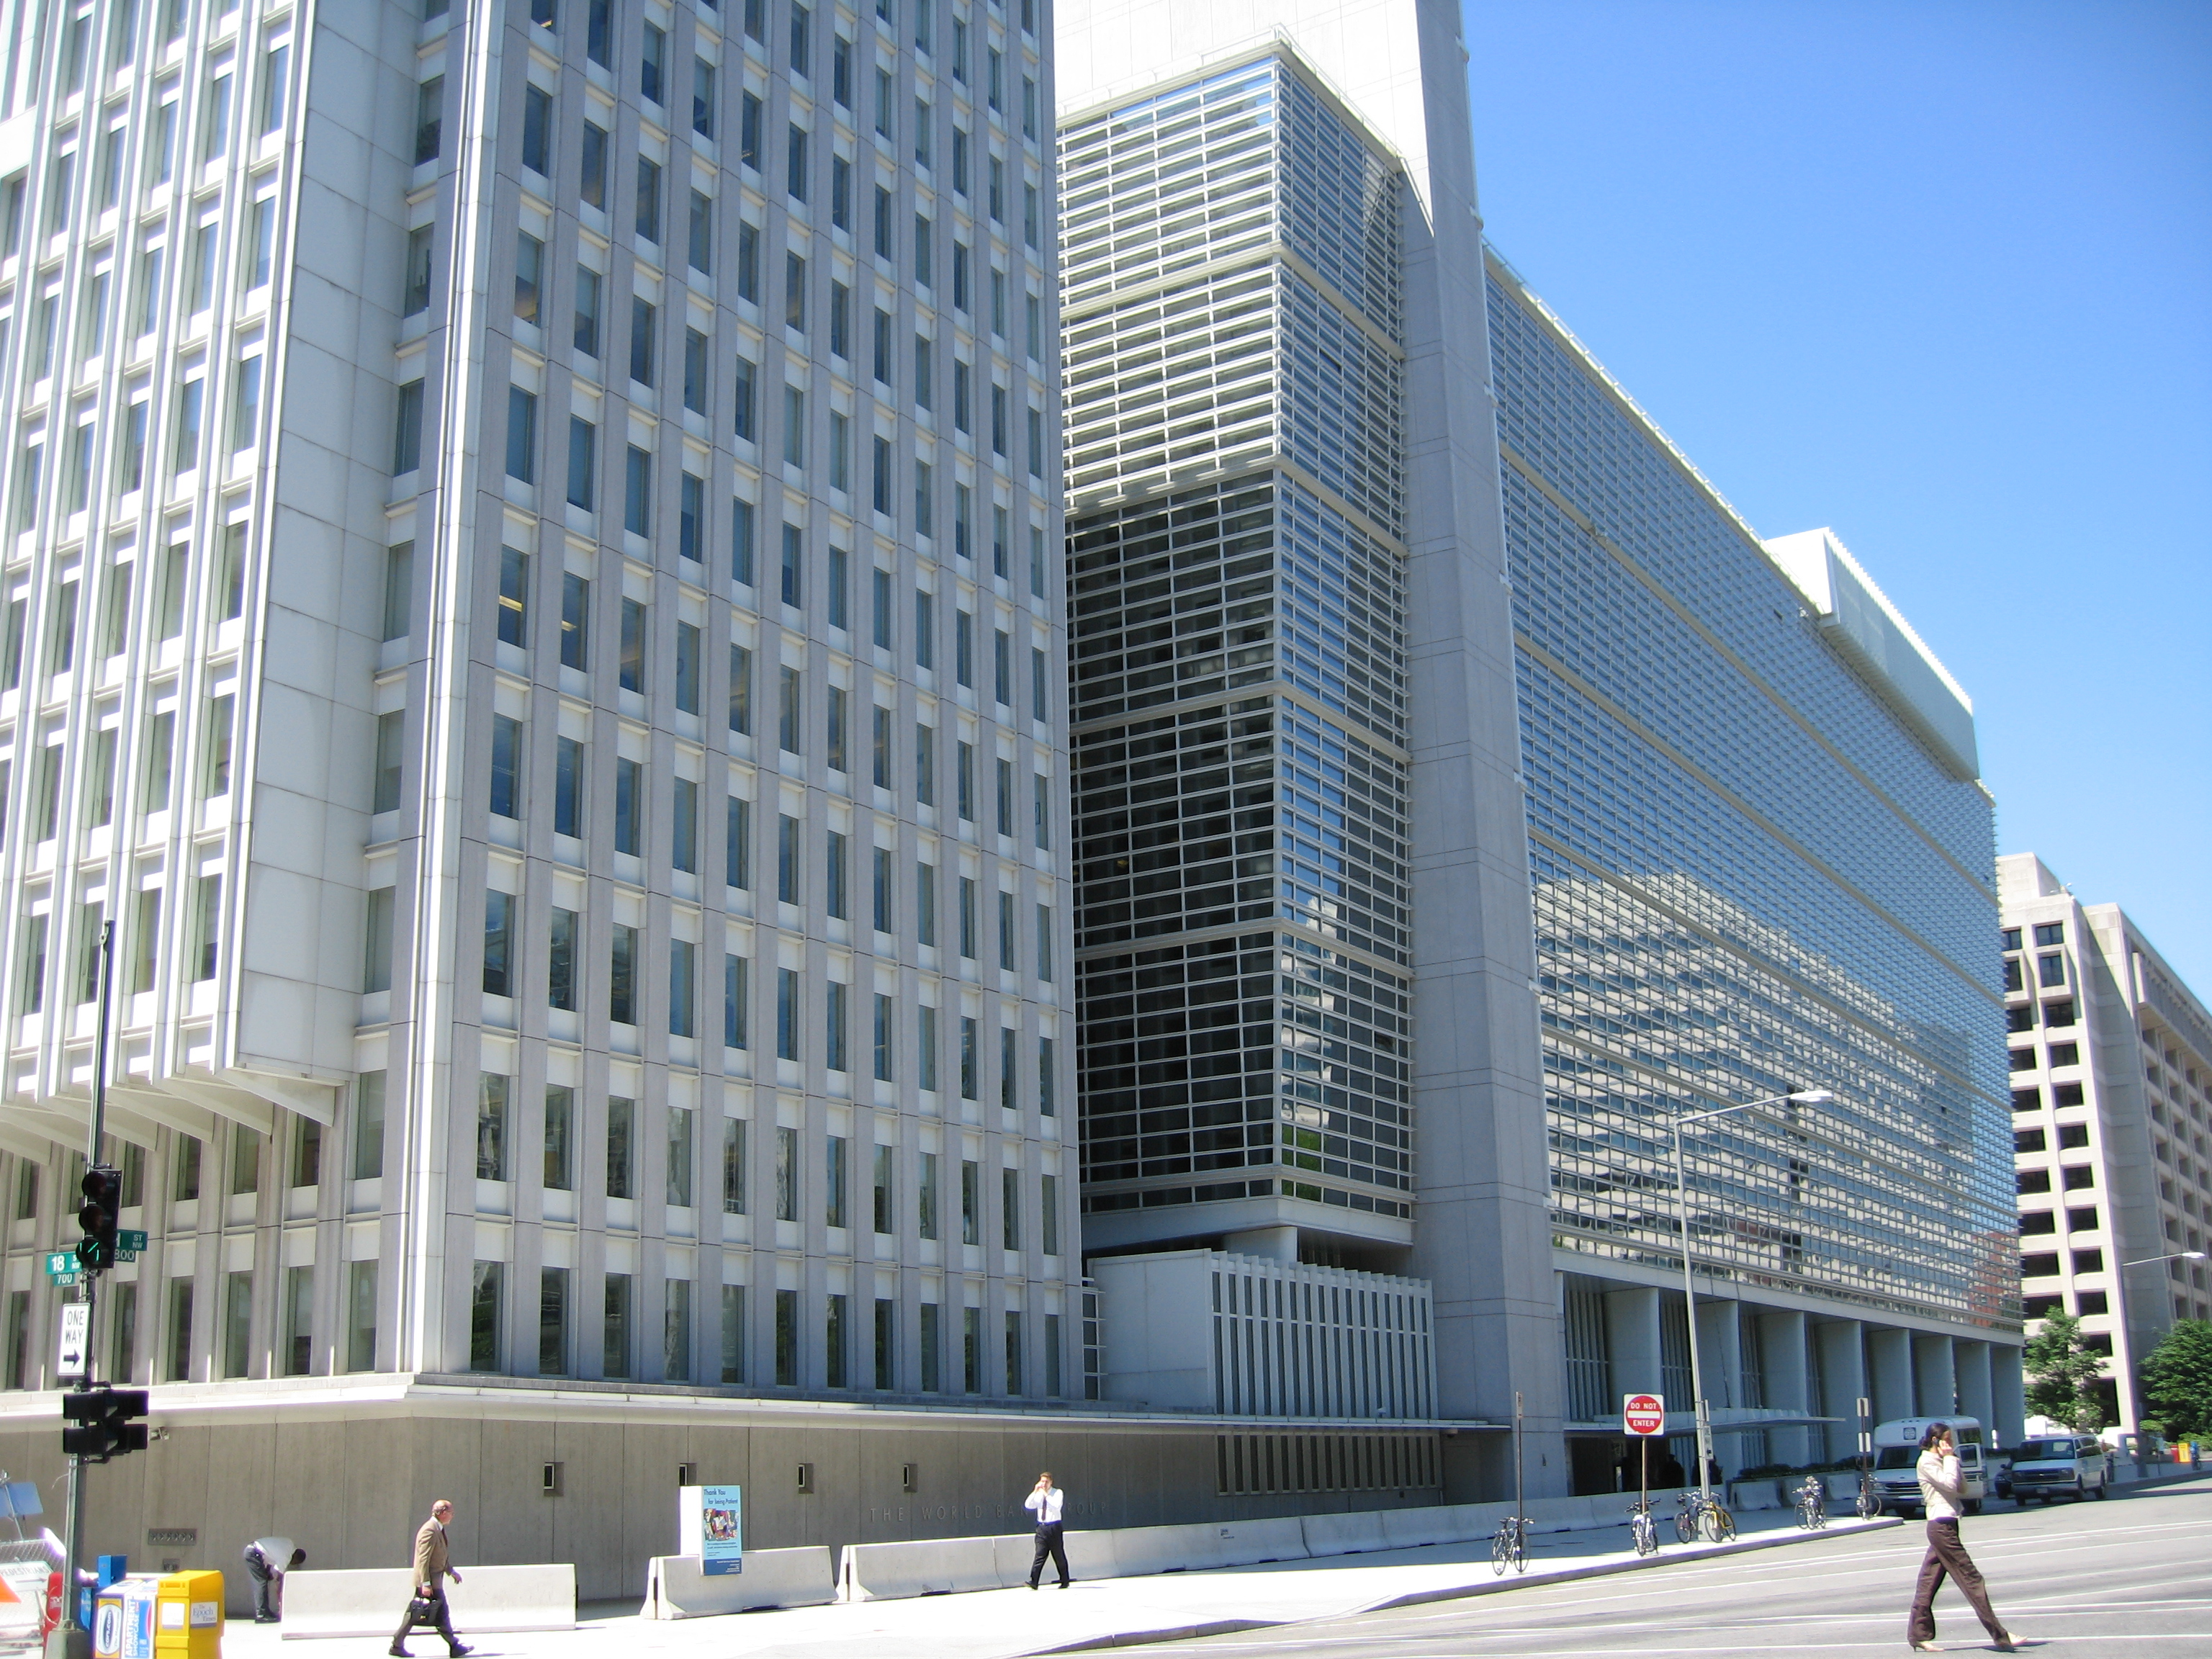 Photo of the World Bank HQ